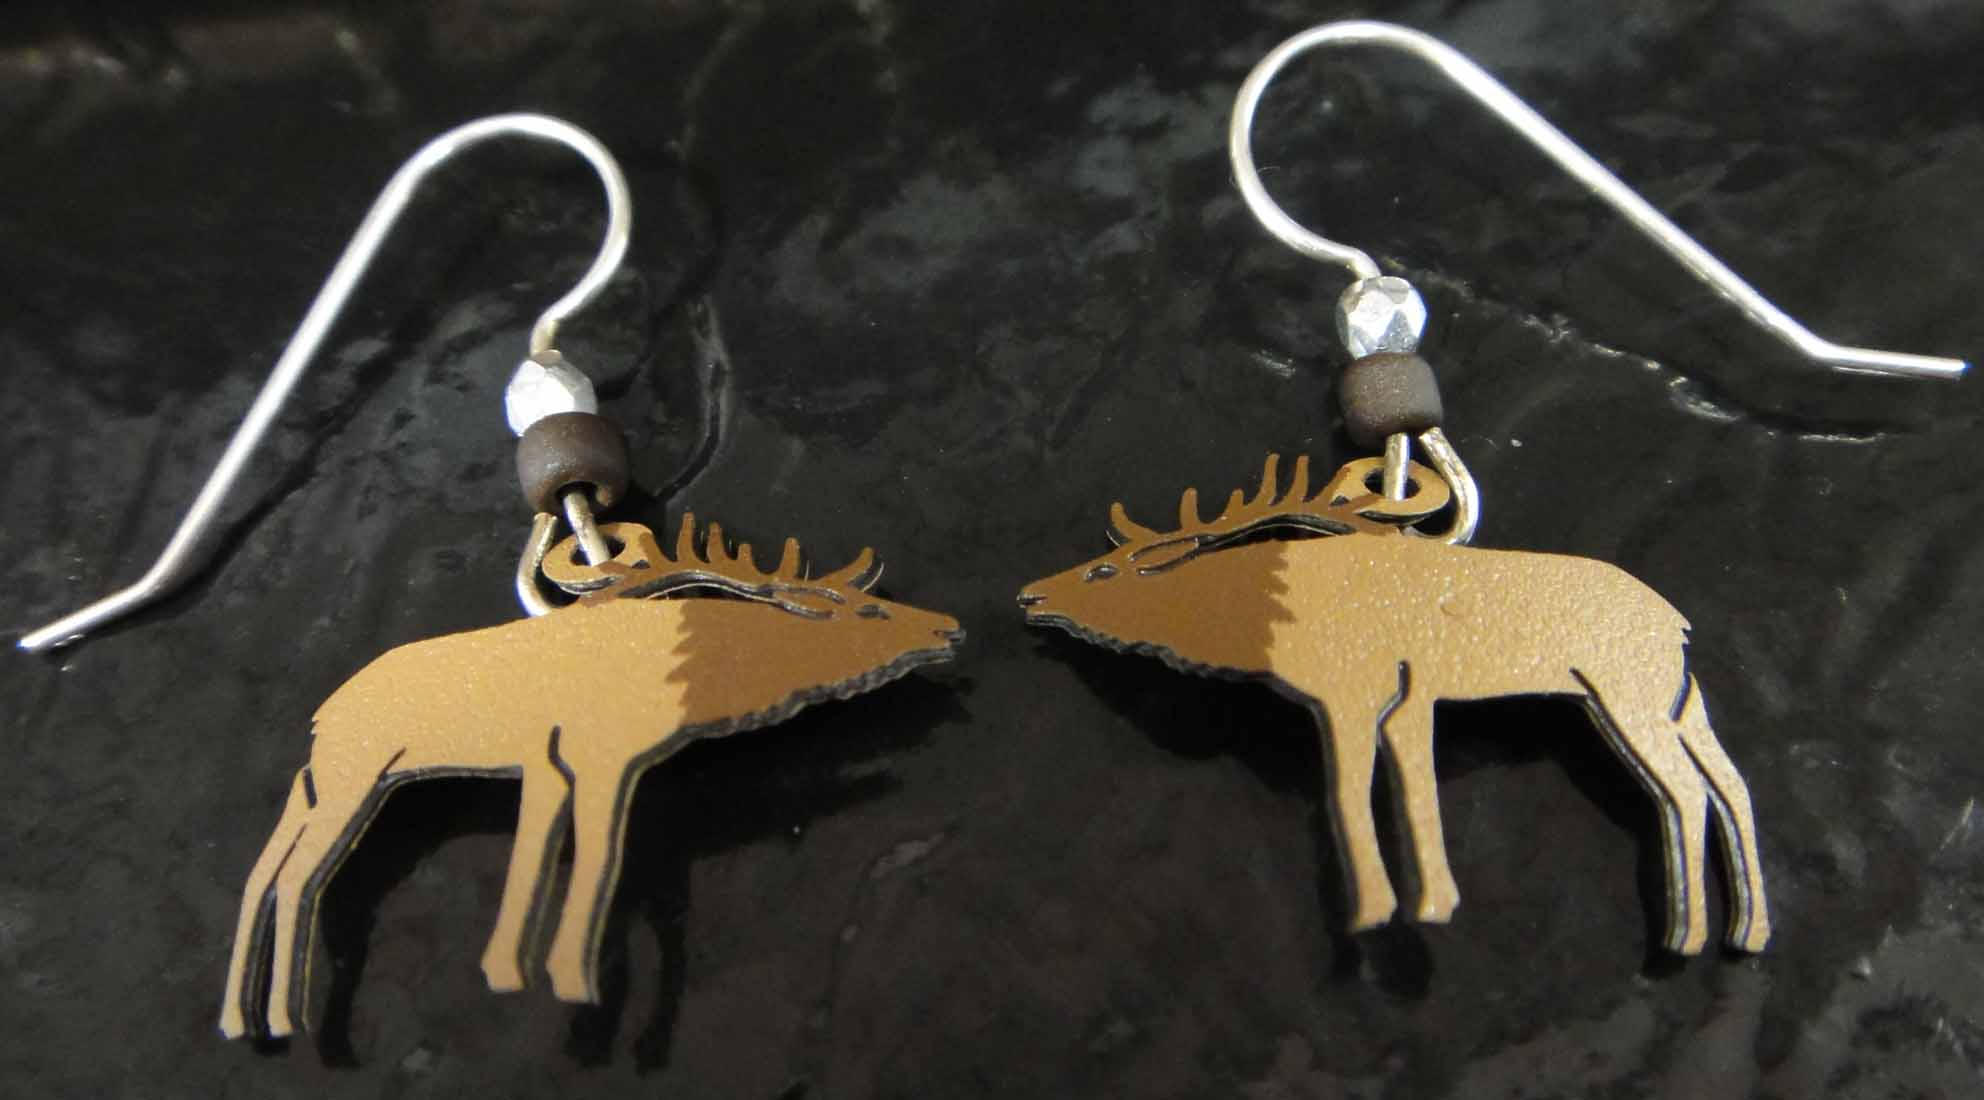 These moose earrings are handmade by Sienna Sky.